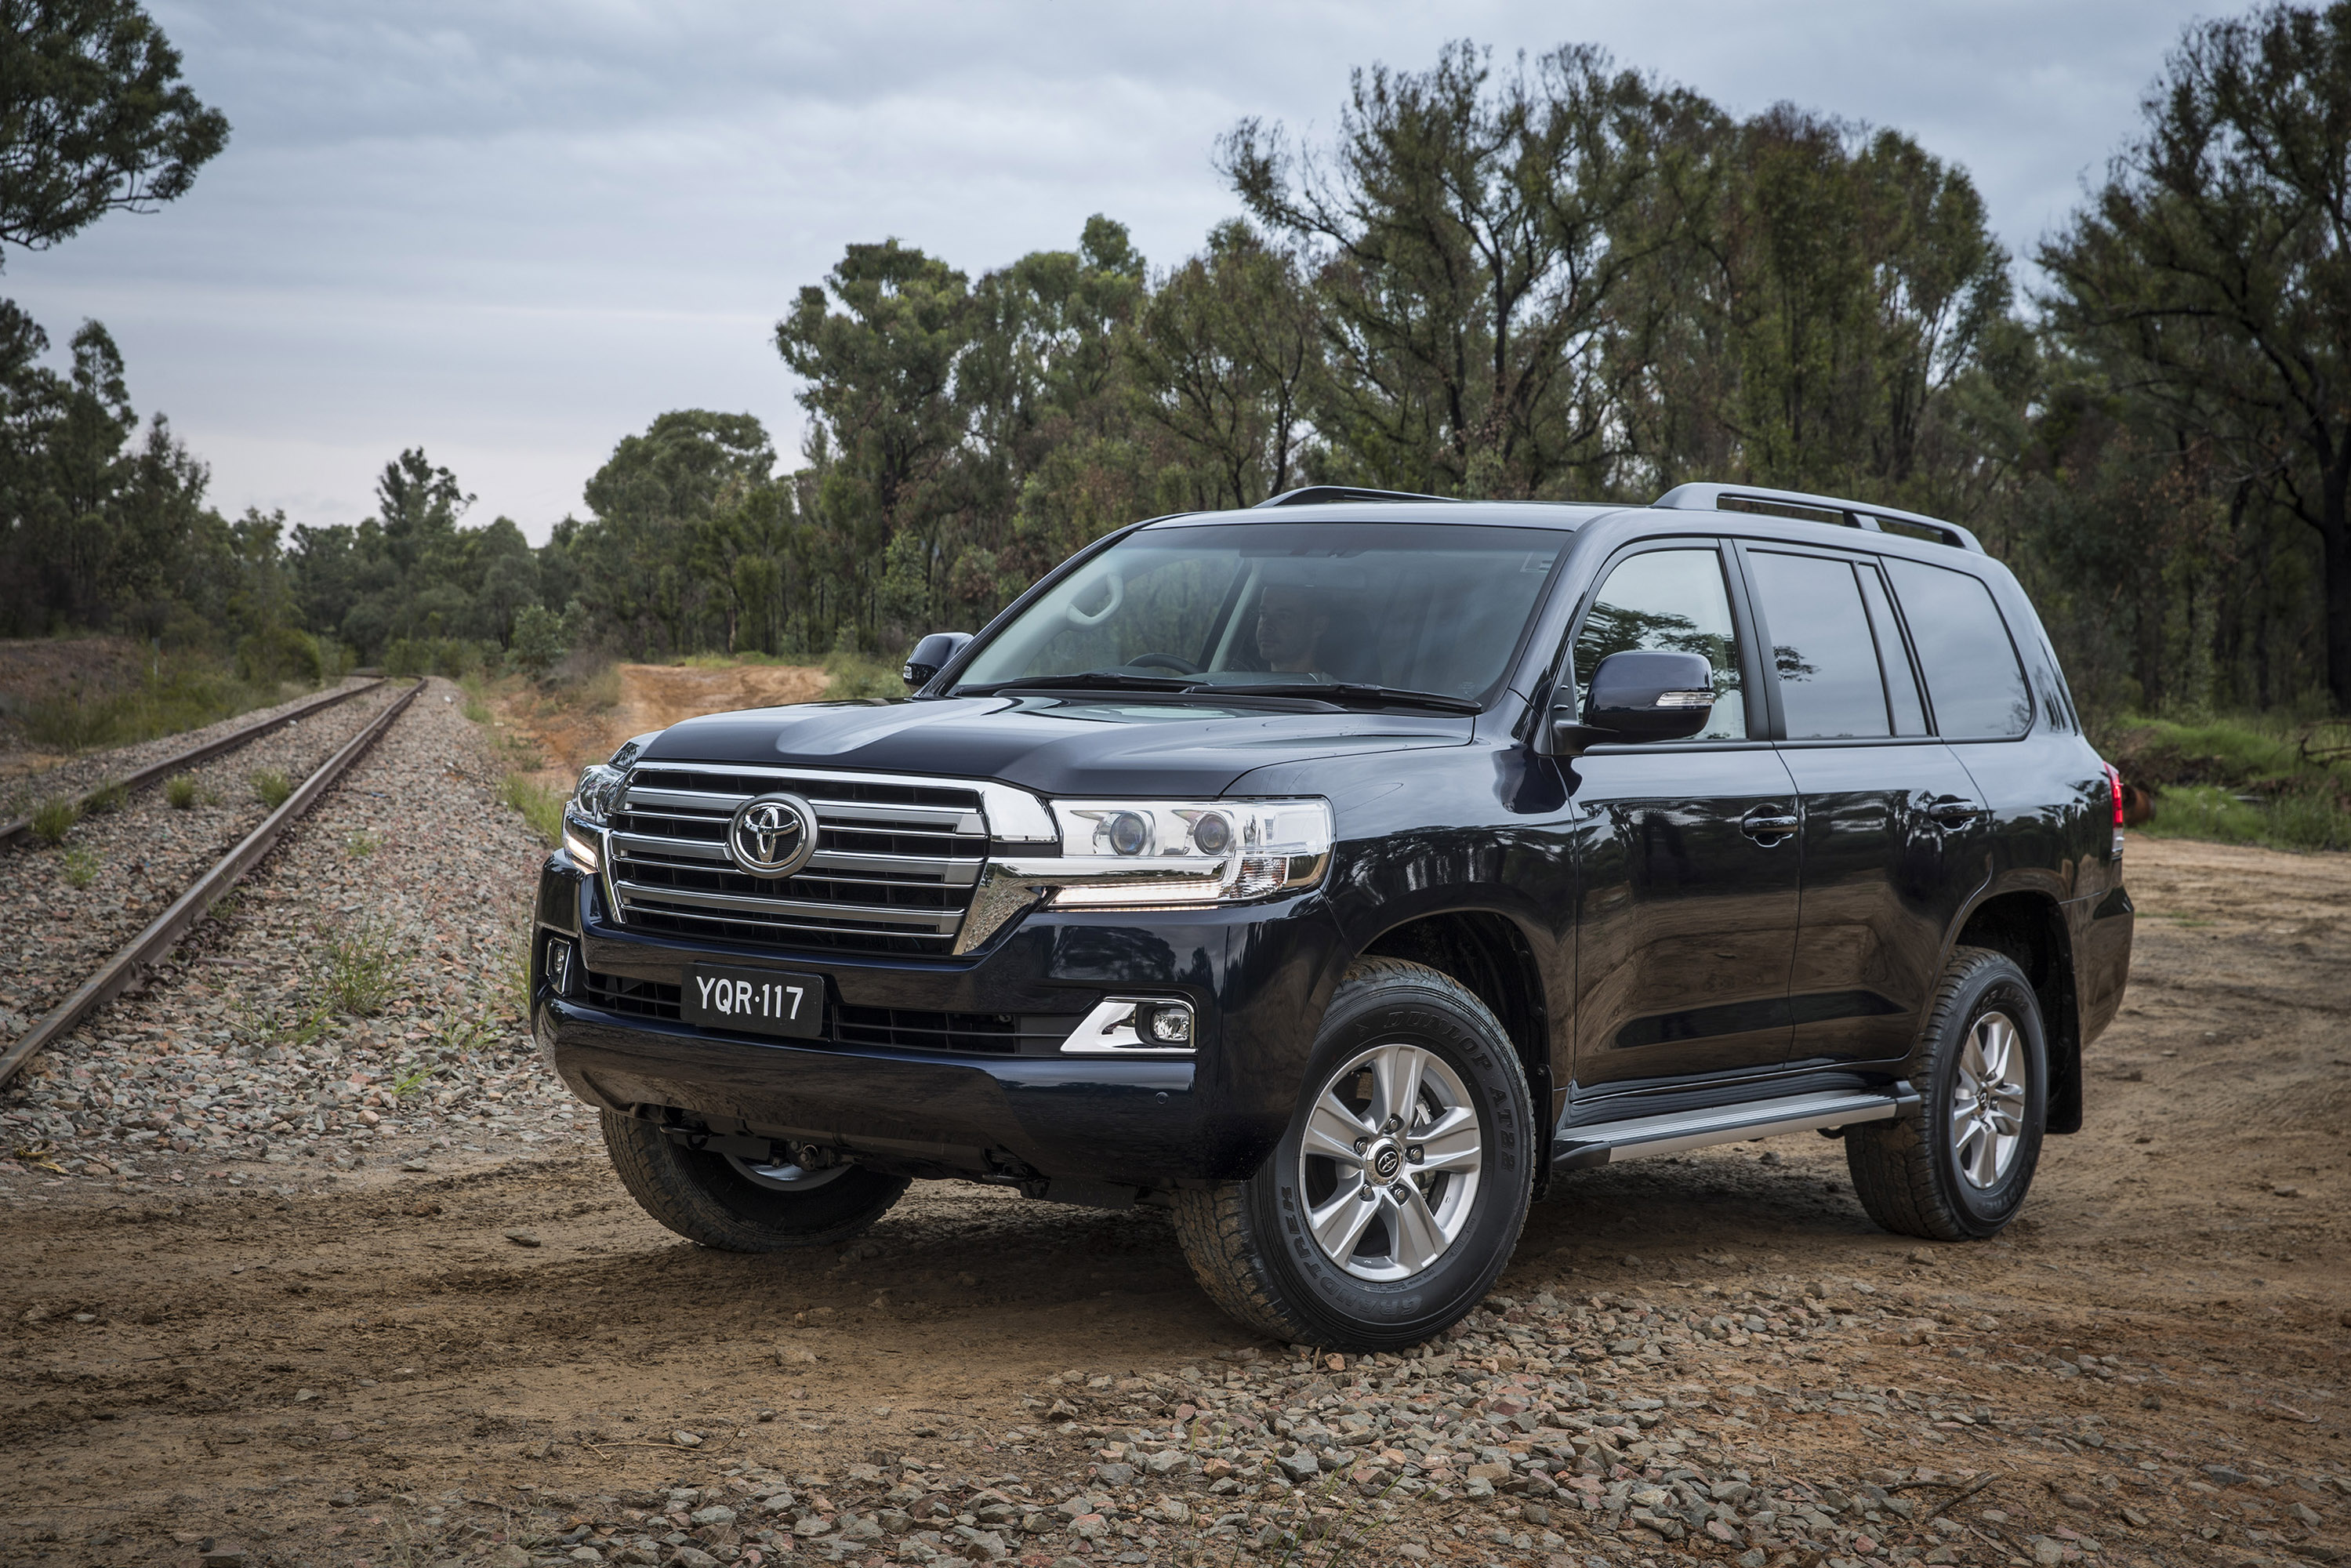 Toyota Reveals Limited Run Of Land Cruiser Altitude Model